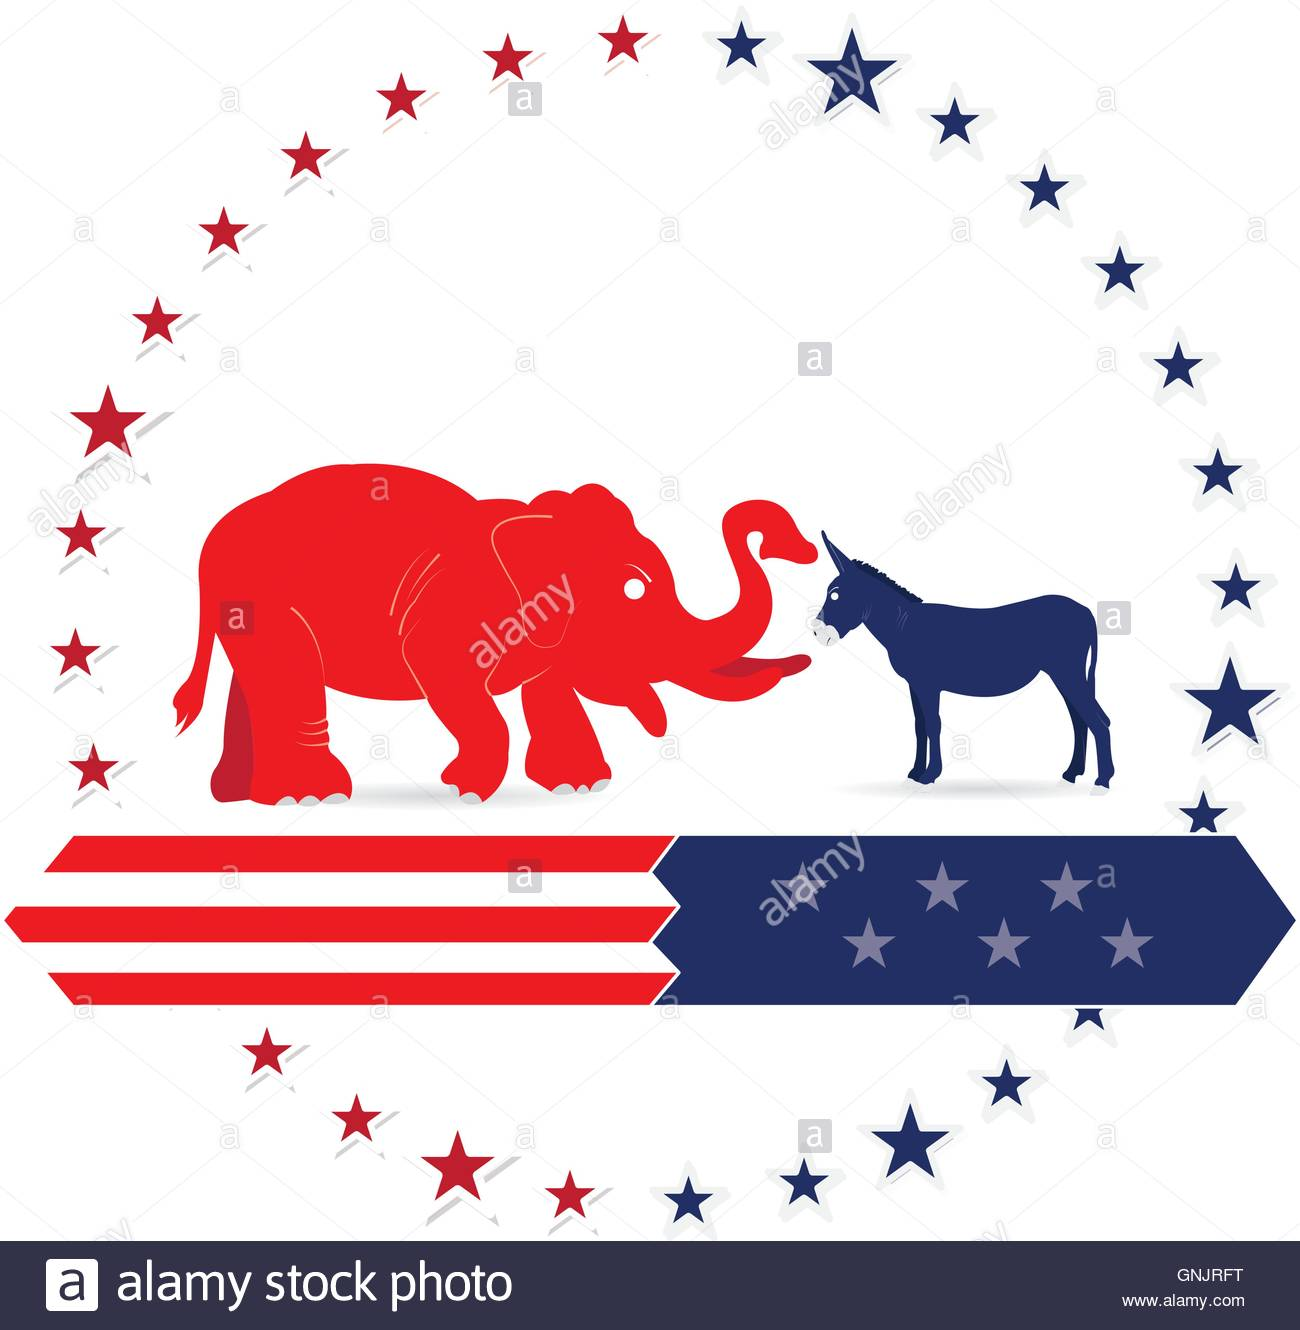 Isolated republican and democrat symbols on a white background isolated republican and democrat symbols on a white background with stars buycottarizona